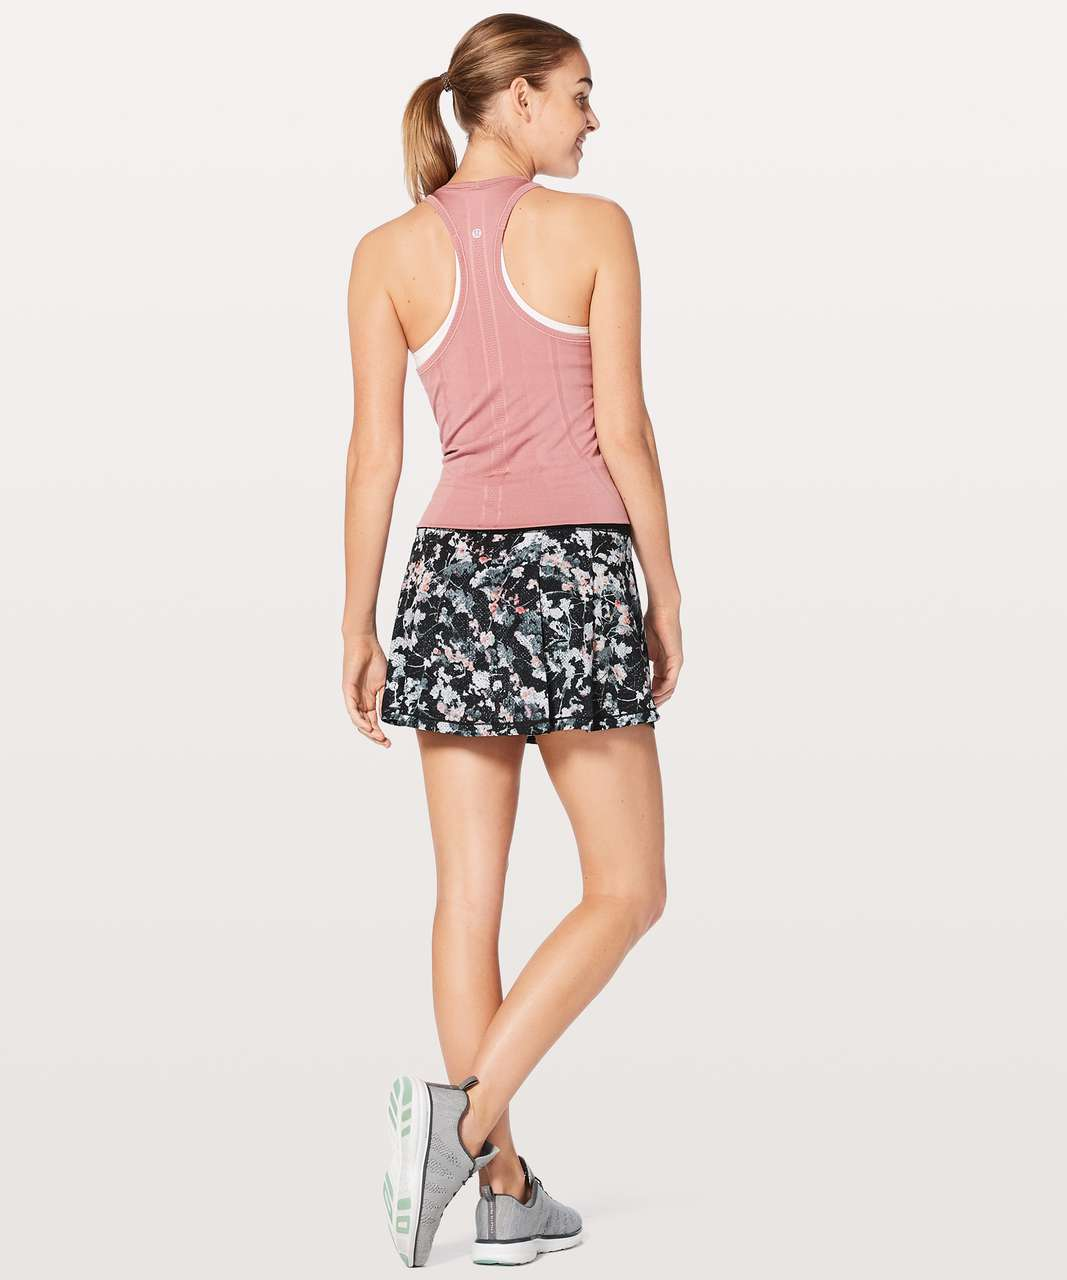 Lululemon Pace Rival Skirt (Tall) *No Panels - Spring Bloom Multi / Black